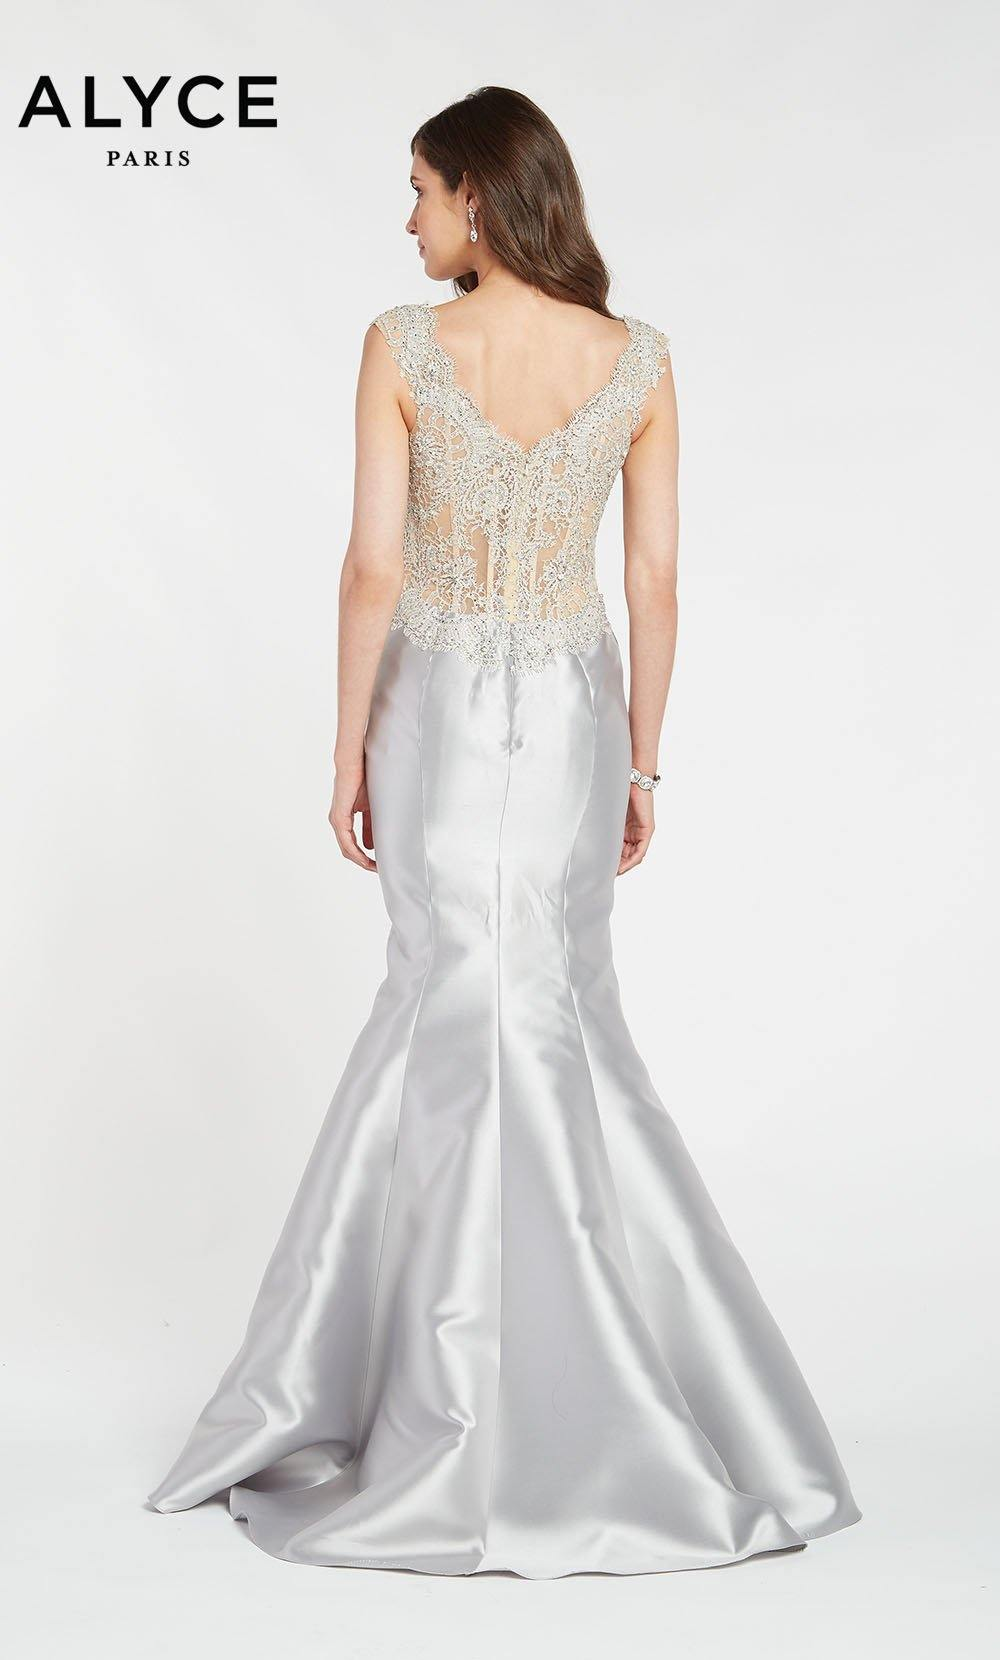 Alyce 27101 long trumpet style gown with a sheer embellished zip up back